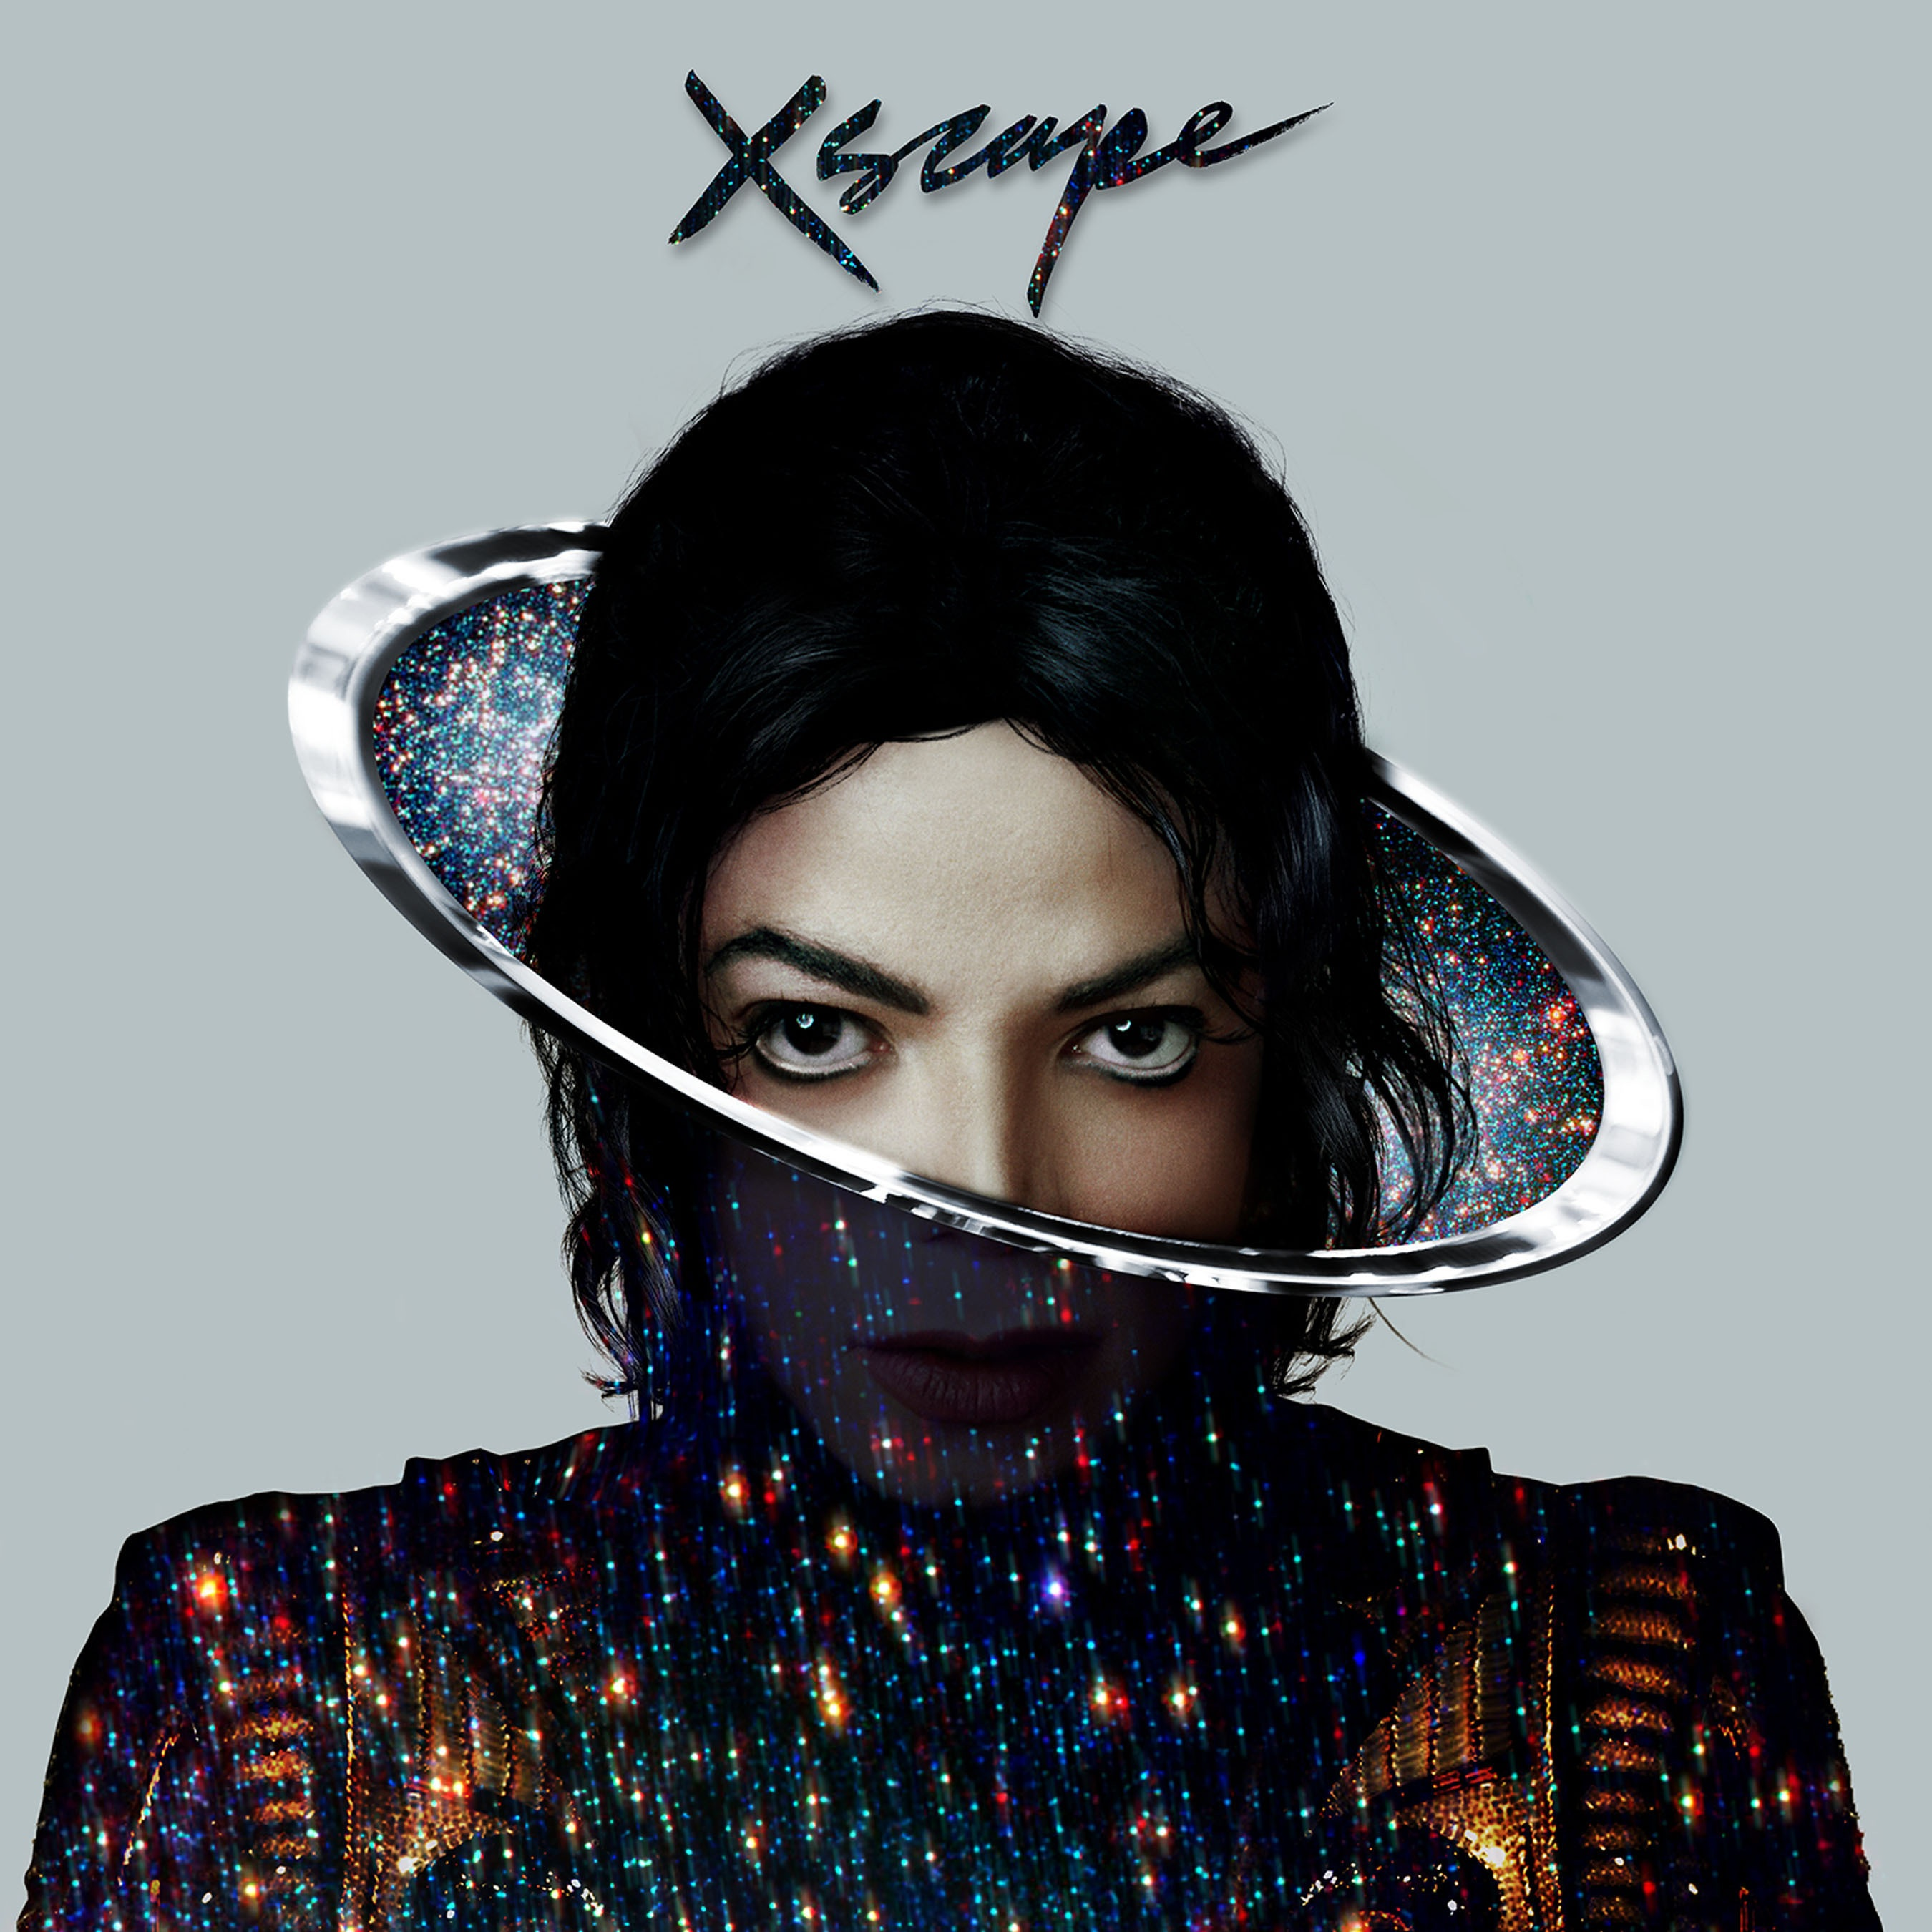 XSCAPE, an album with new songs by Michael Jackson, will be released May 13th by Epic Records